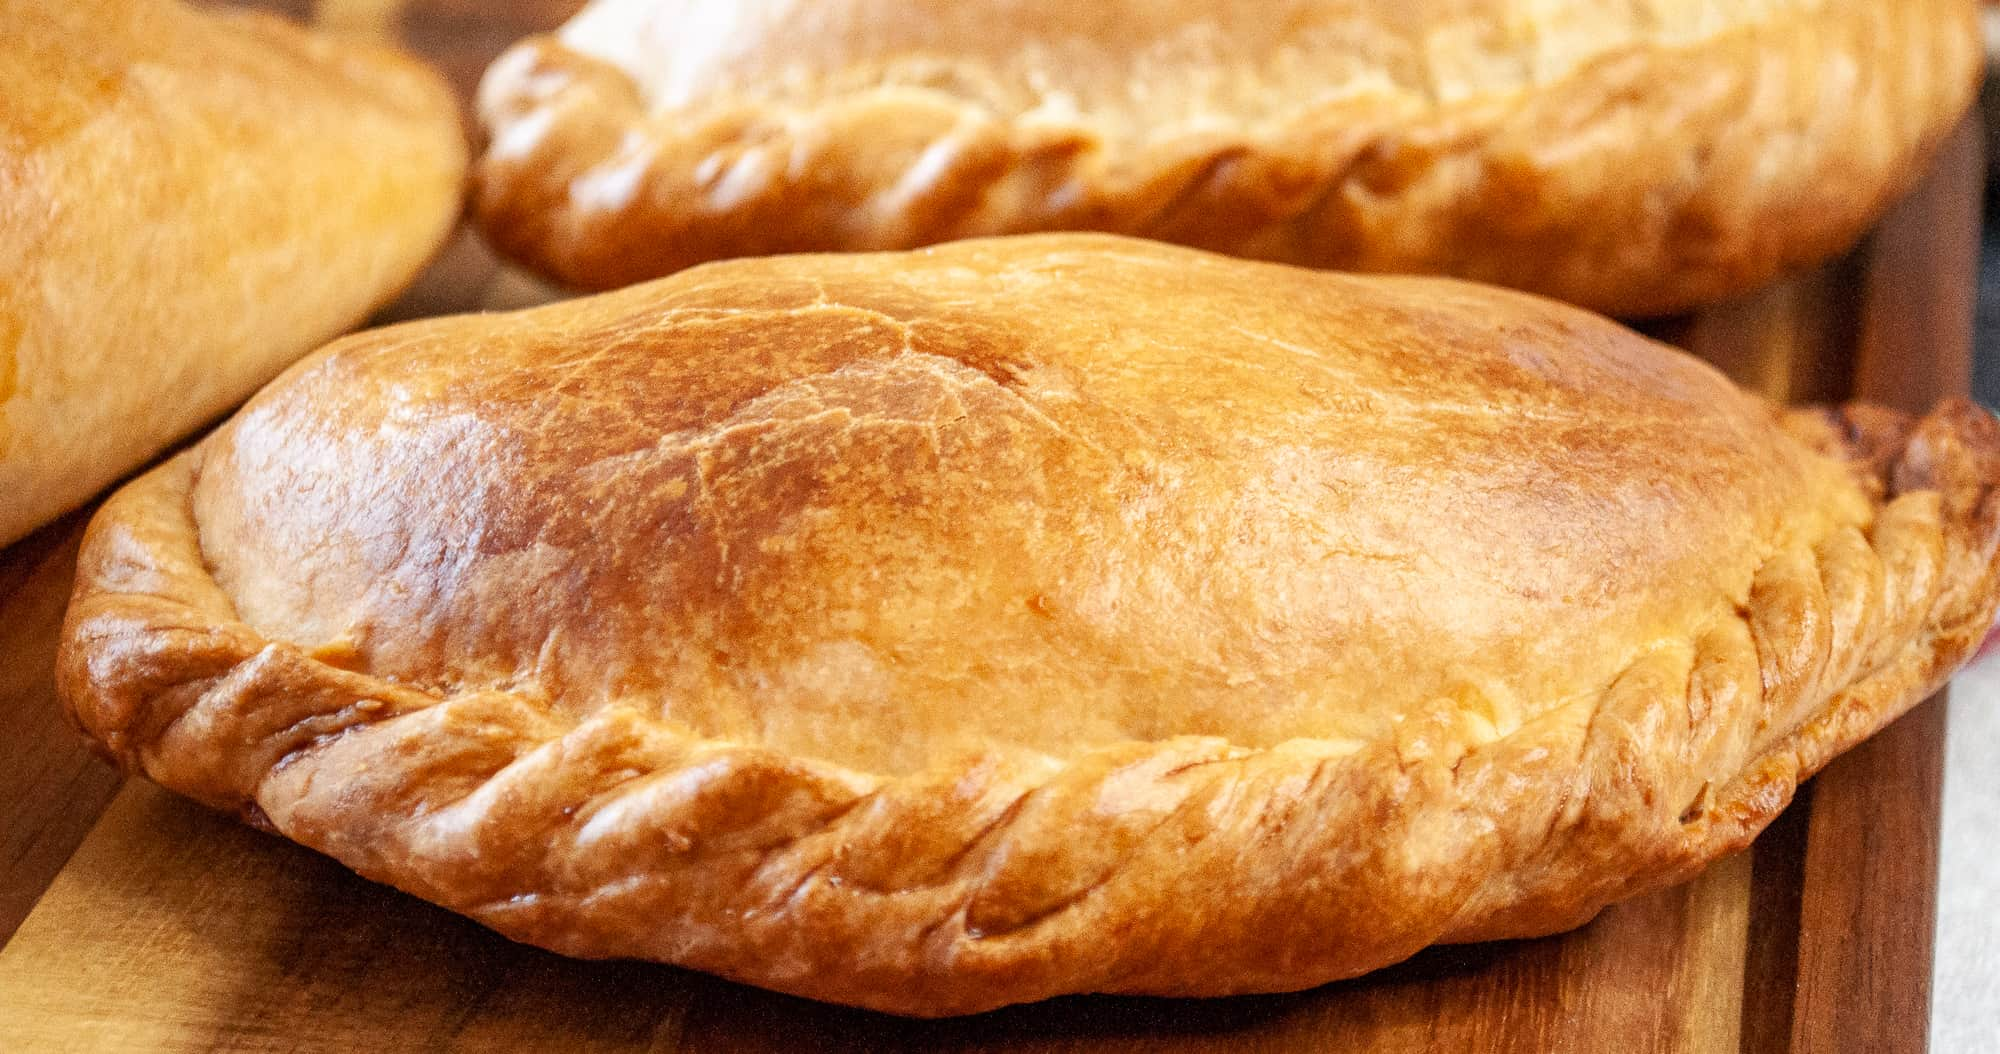 One perfect pasty!